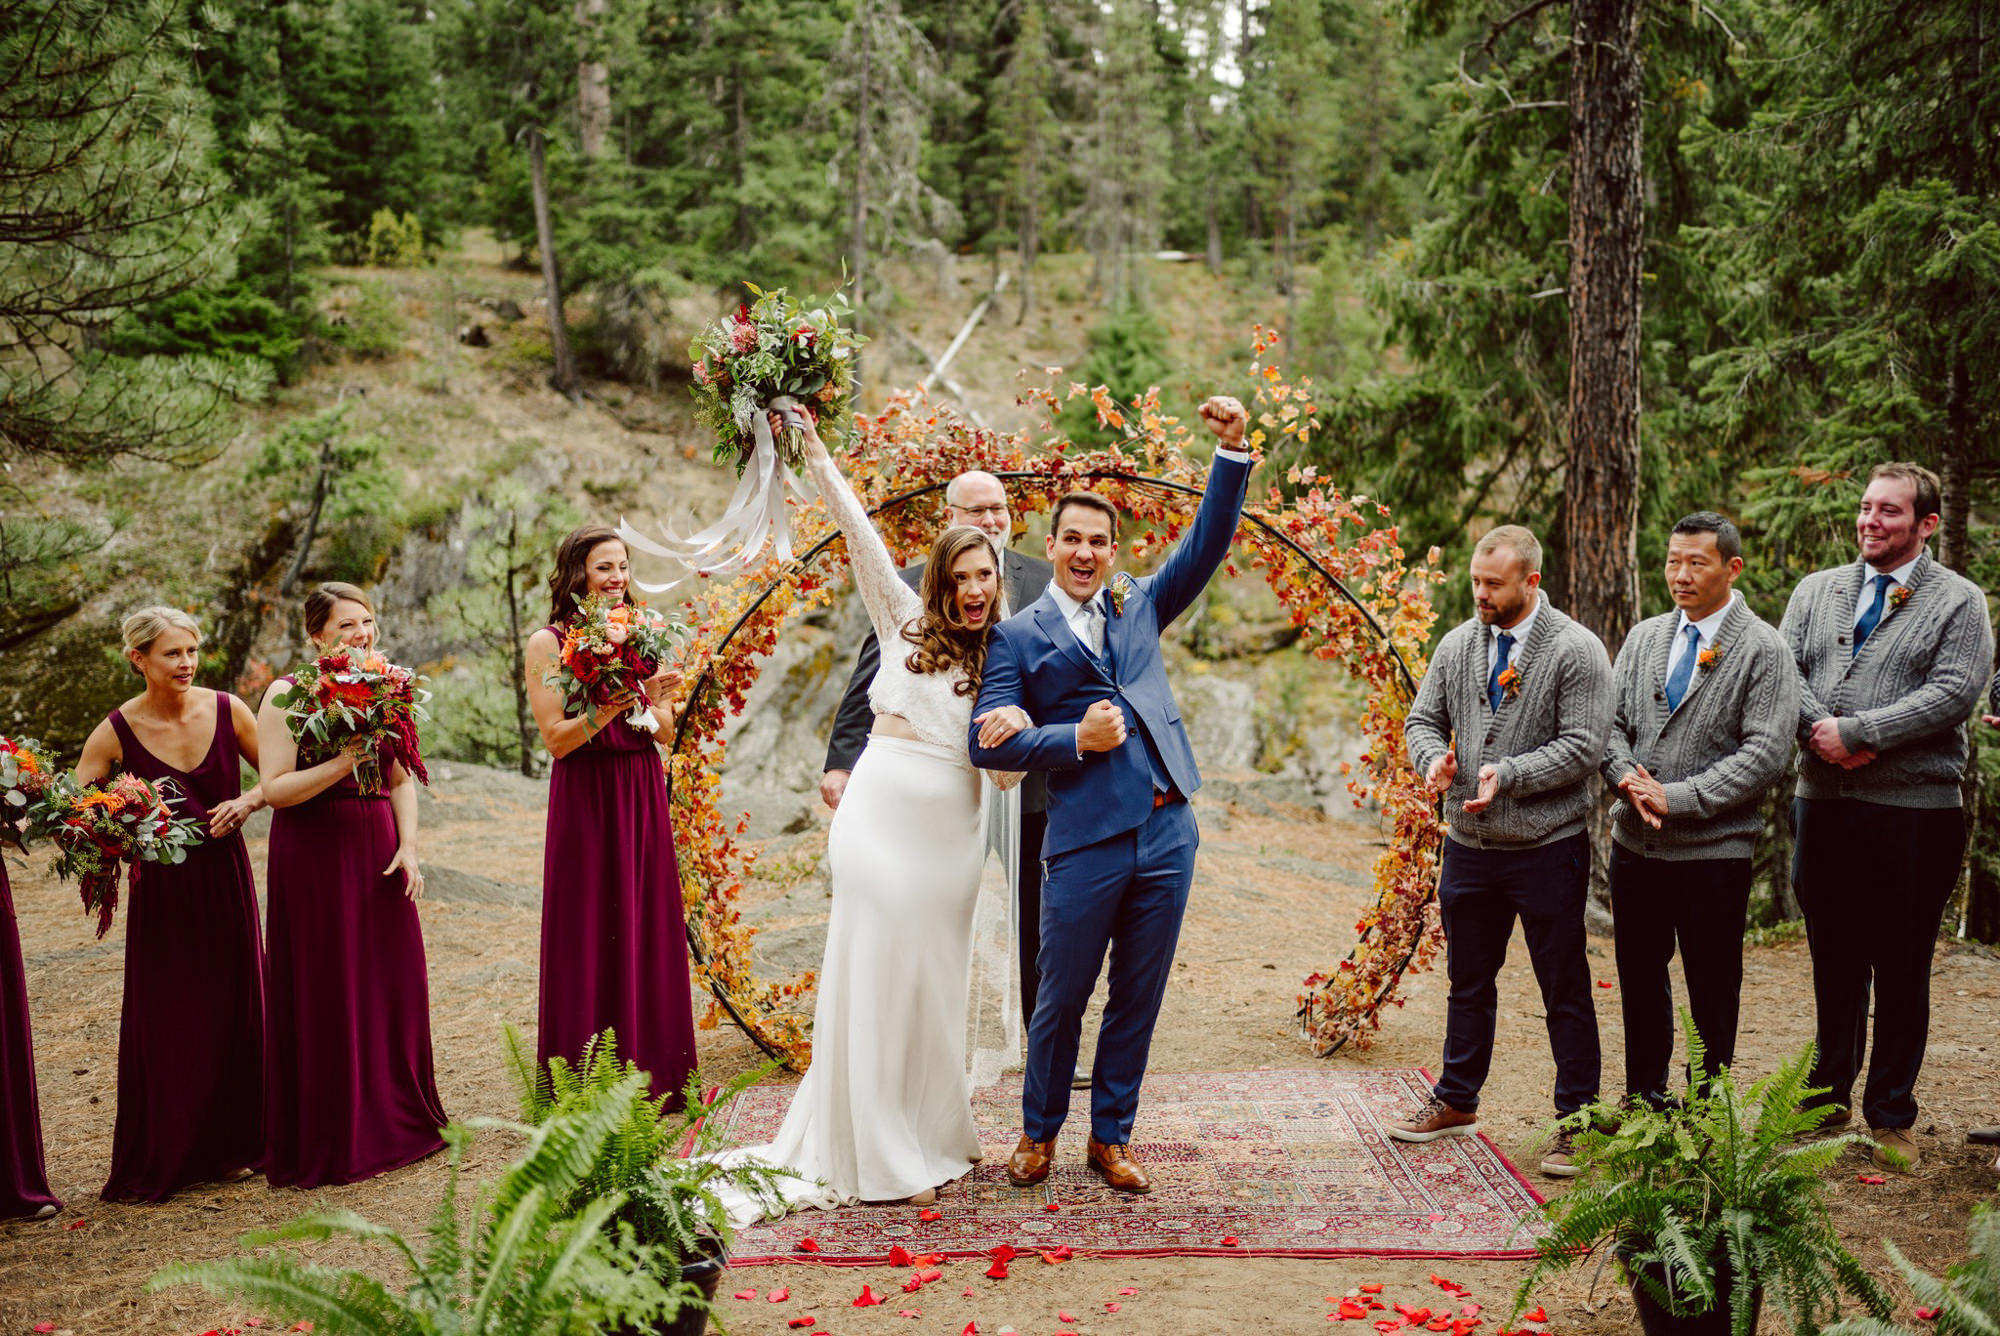 Just married couple celebrating at forest ceremony - Photo by Benj Haisch